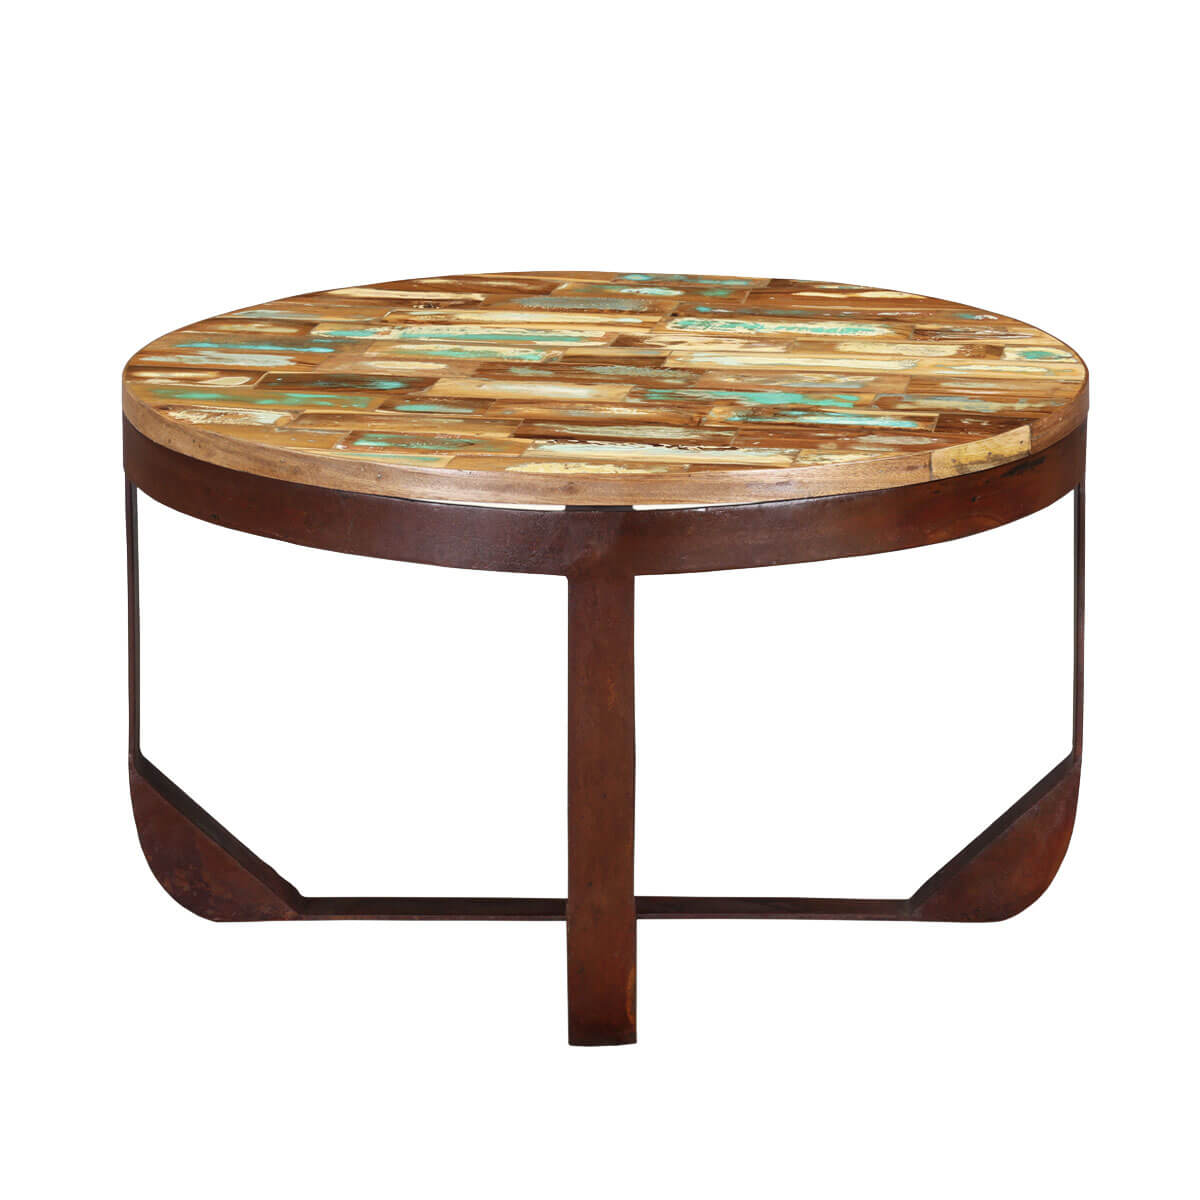 Reclaimed Wood Round Table: Reclaimed Wood Industrial Round Coffee Table